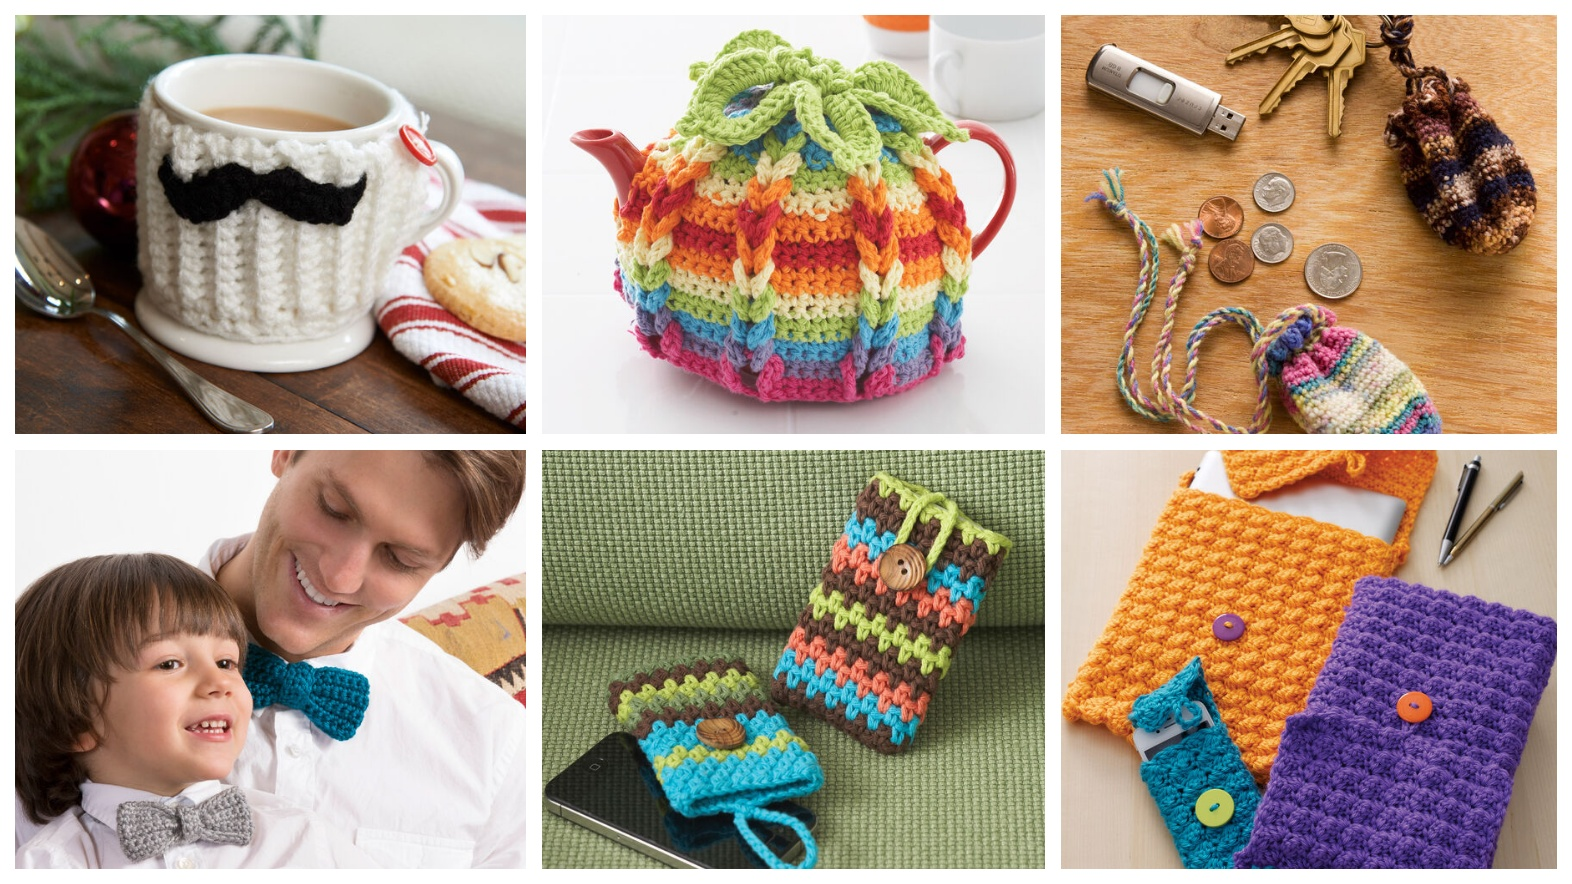 6 Crochet Quick And Easy Patterns